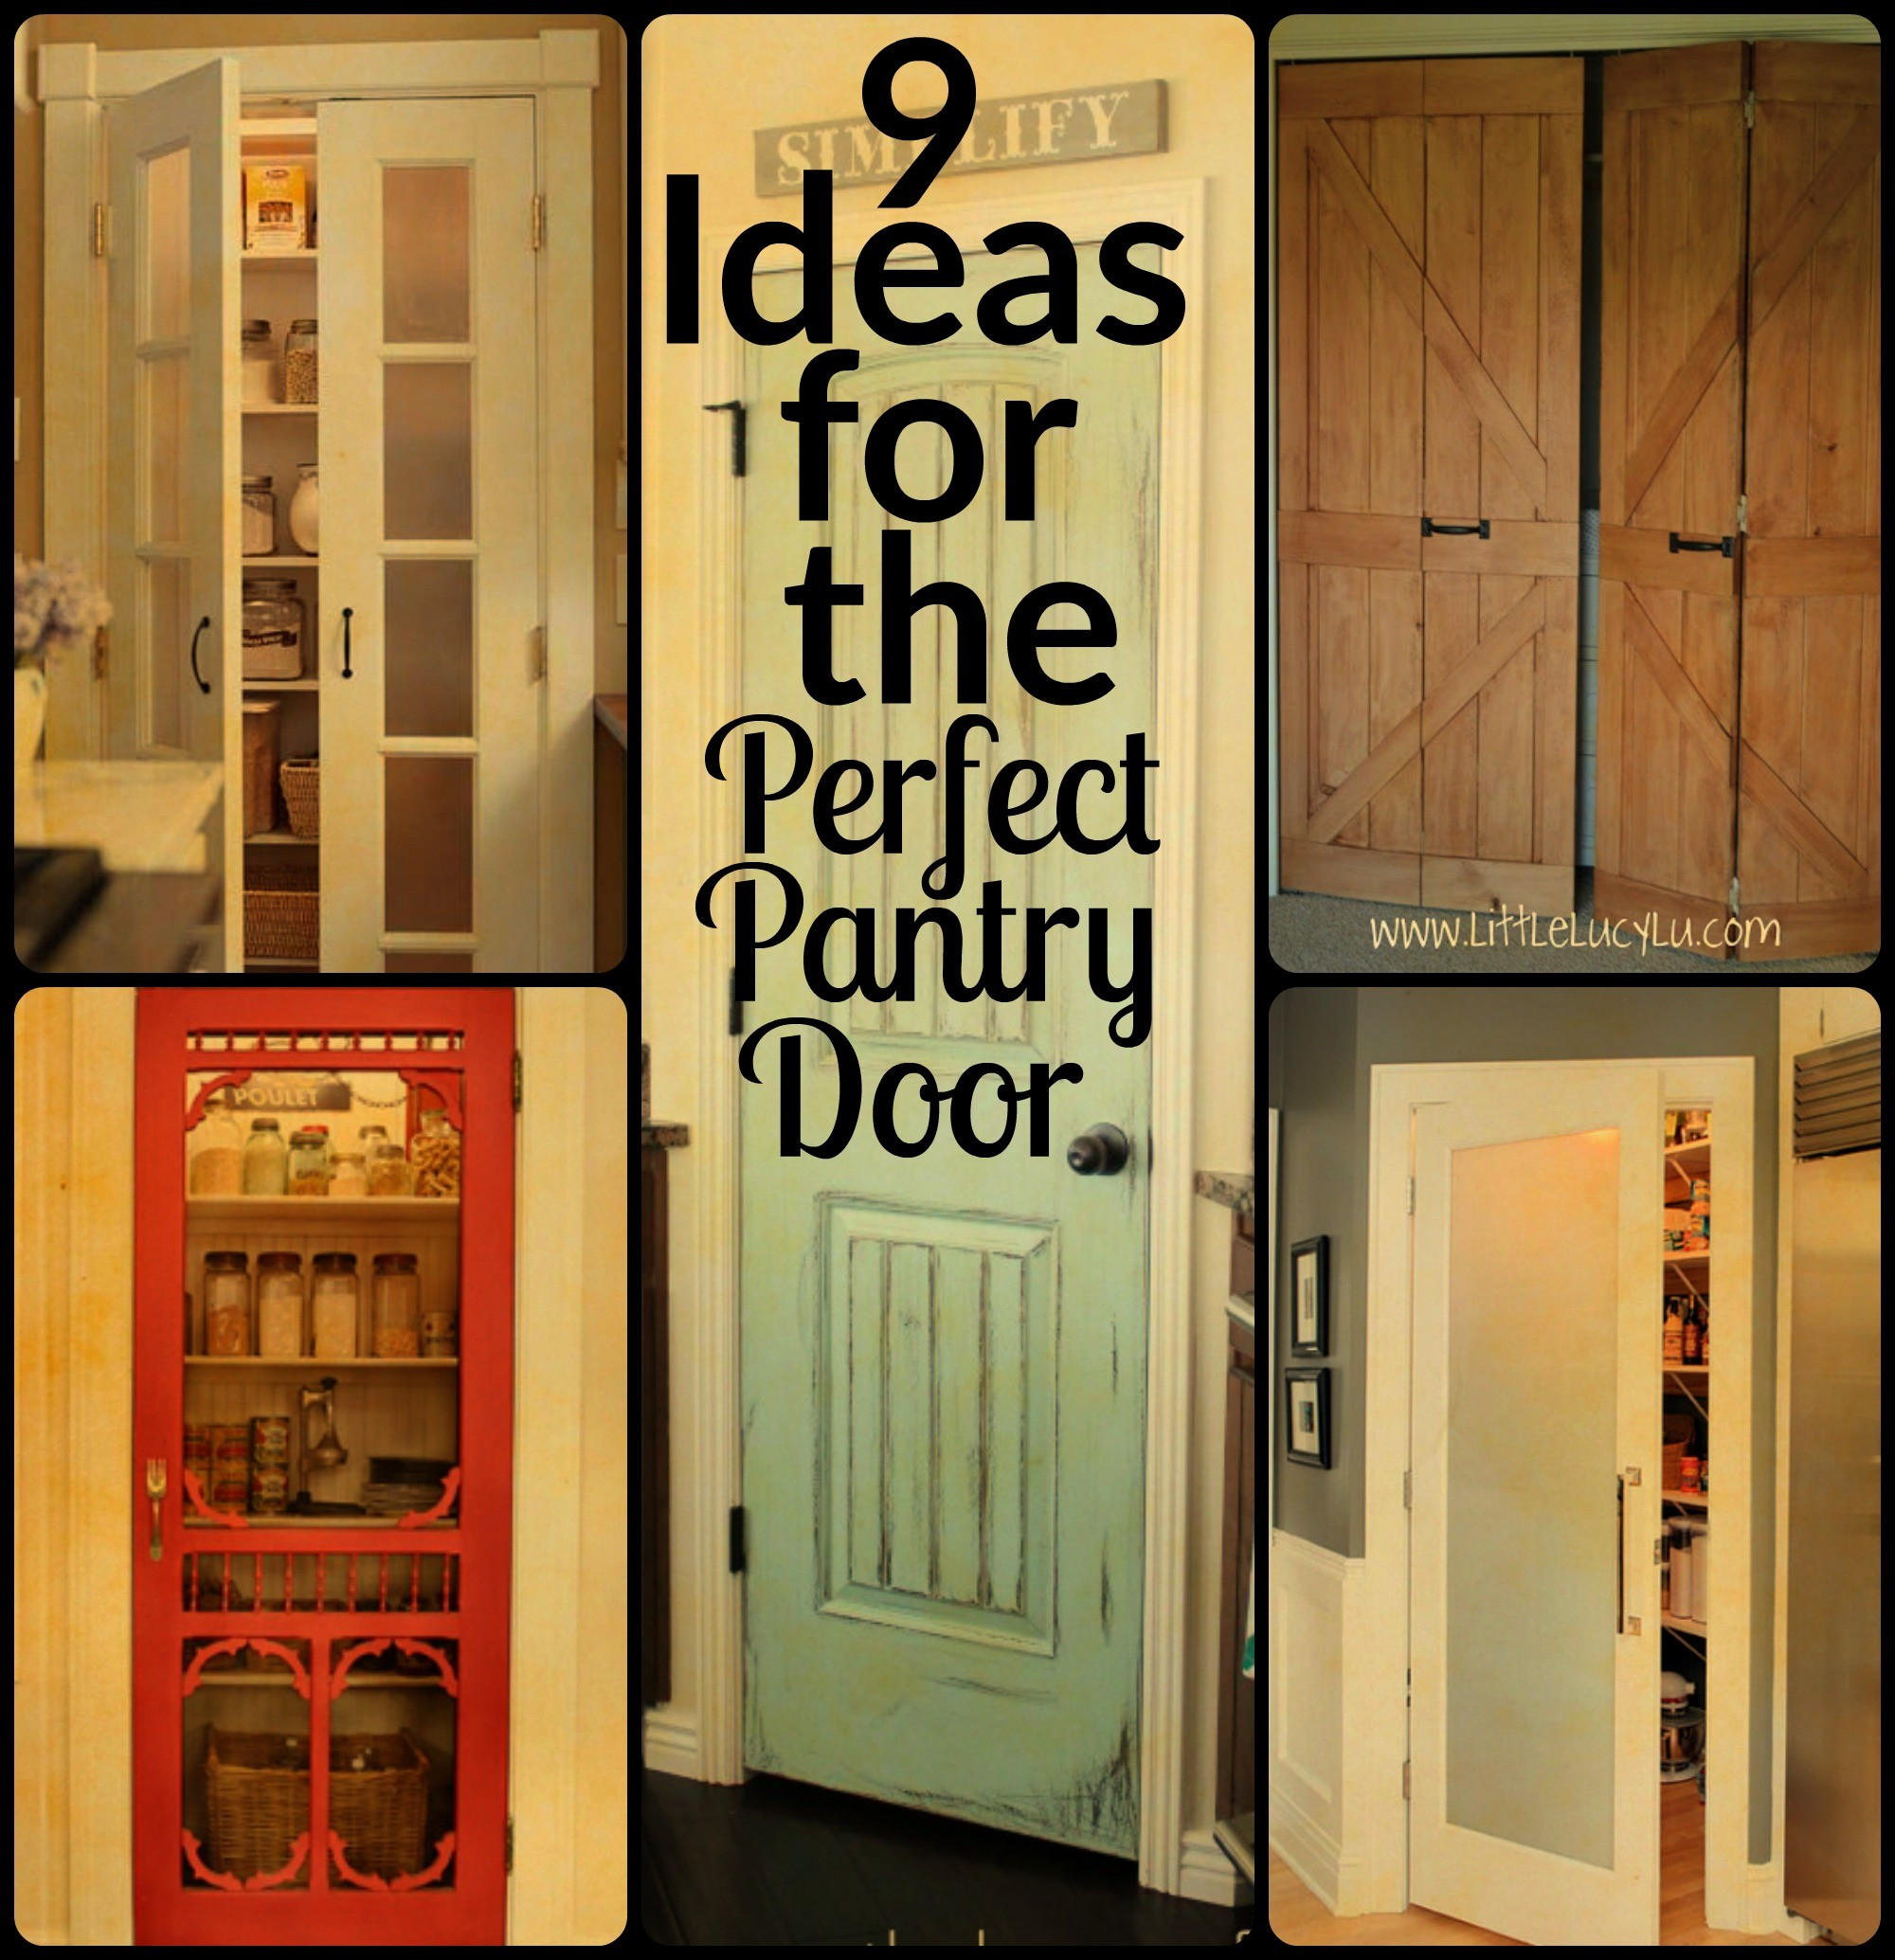 Best ideas about Pantry Door Ideas . Save or Pin 9 Ideas for the Perfect Pantry Door Now.